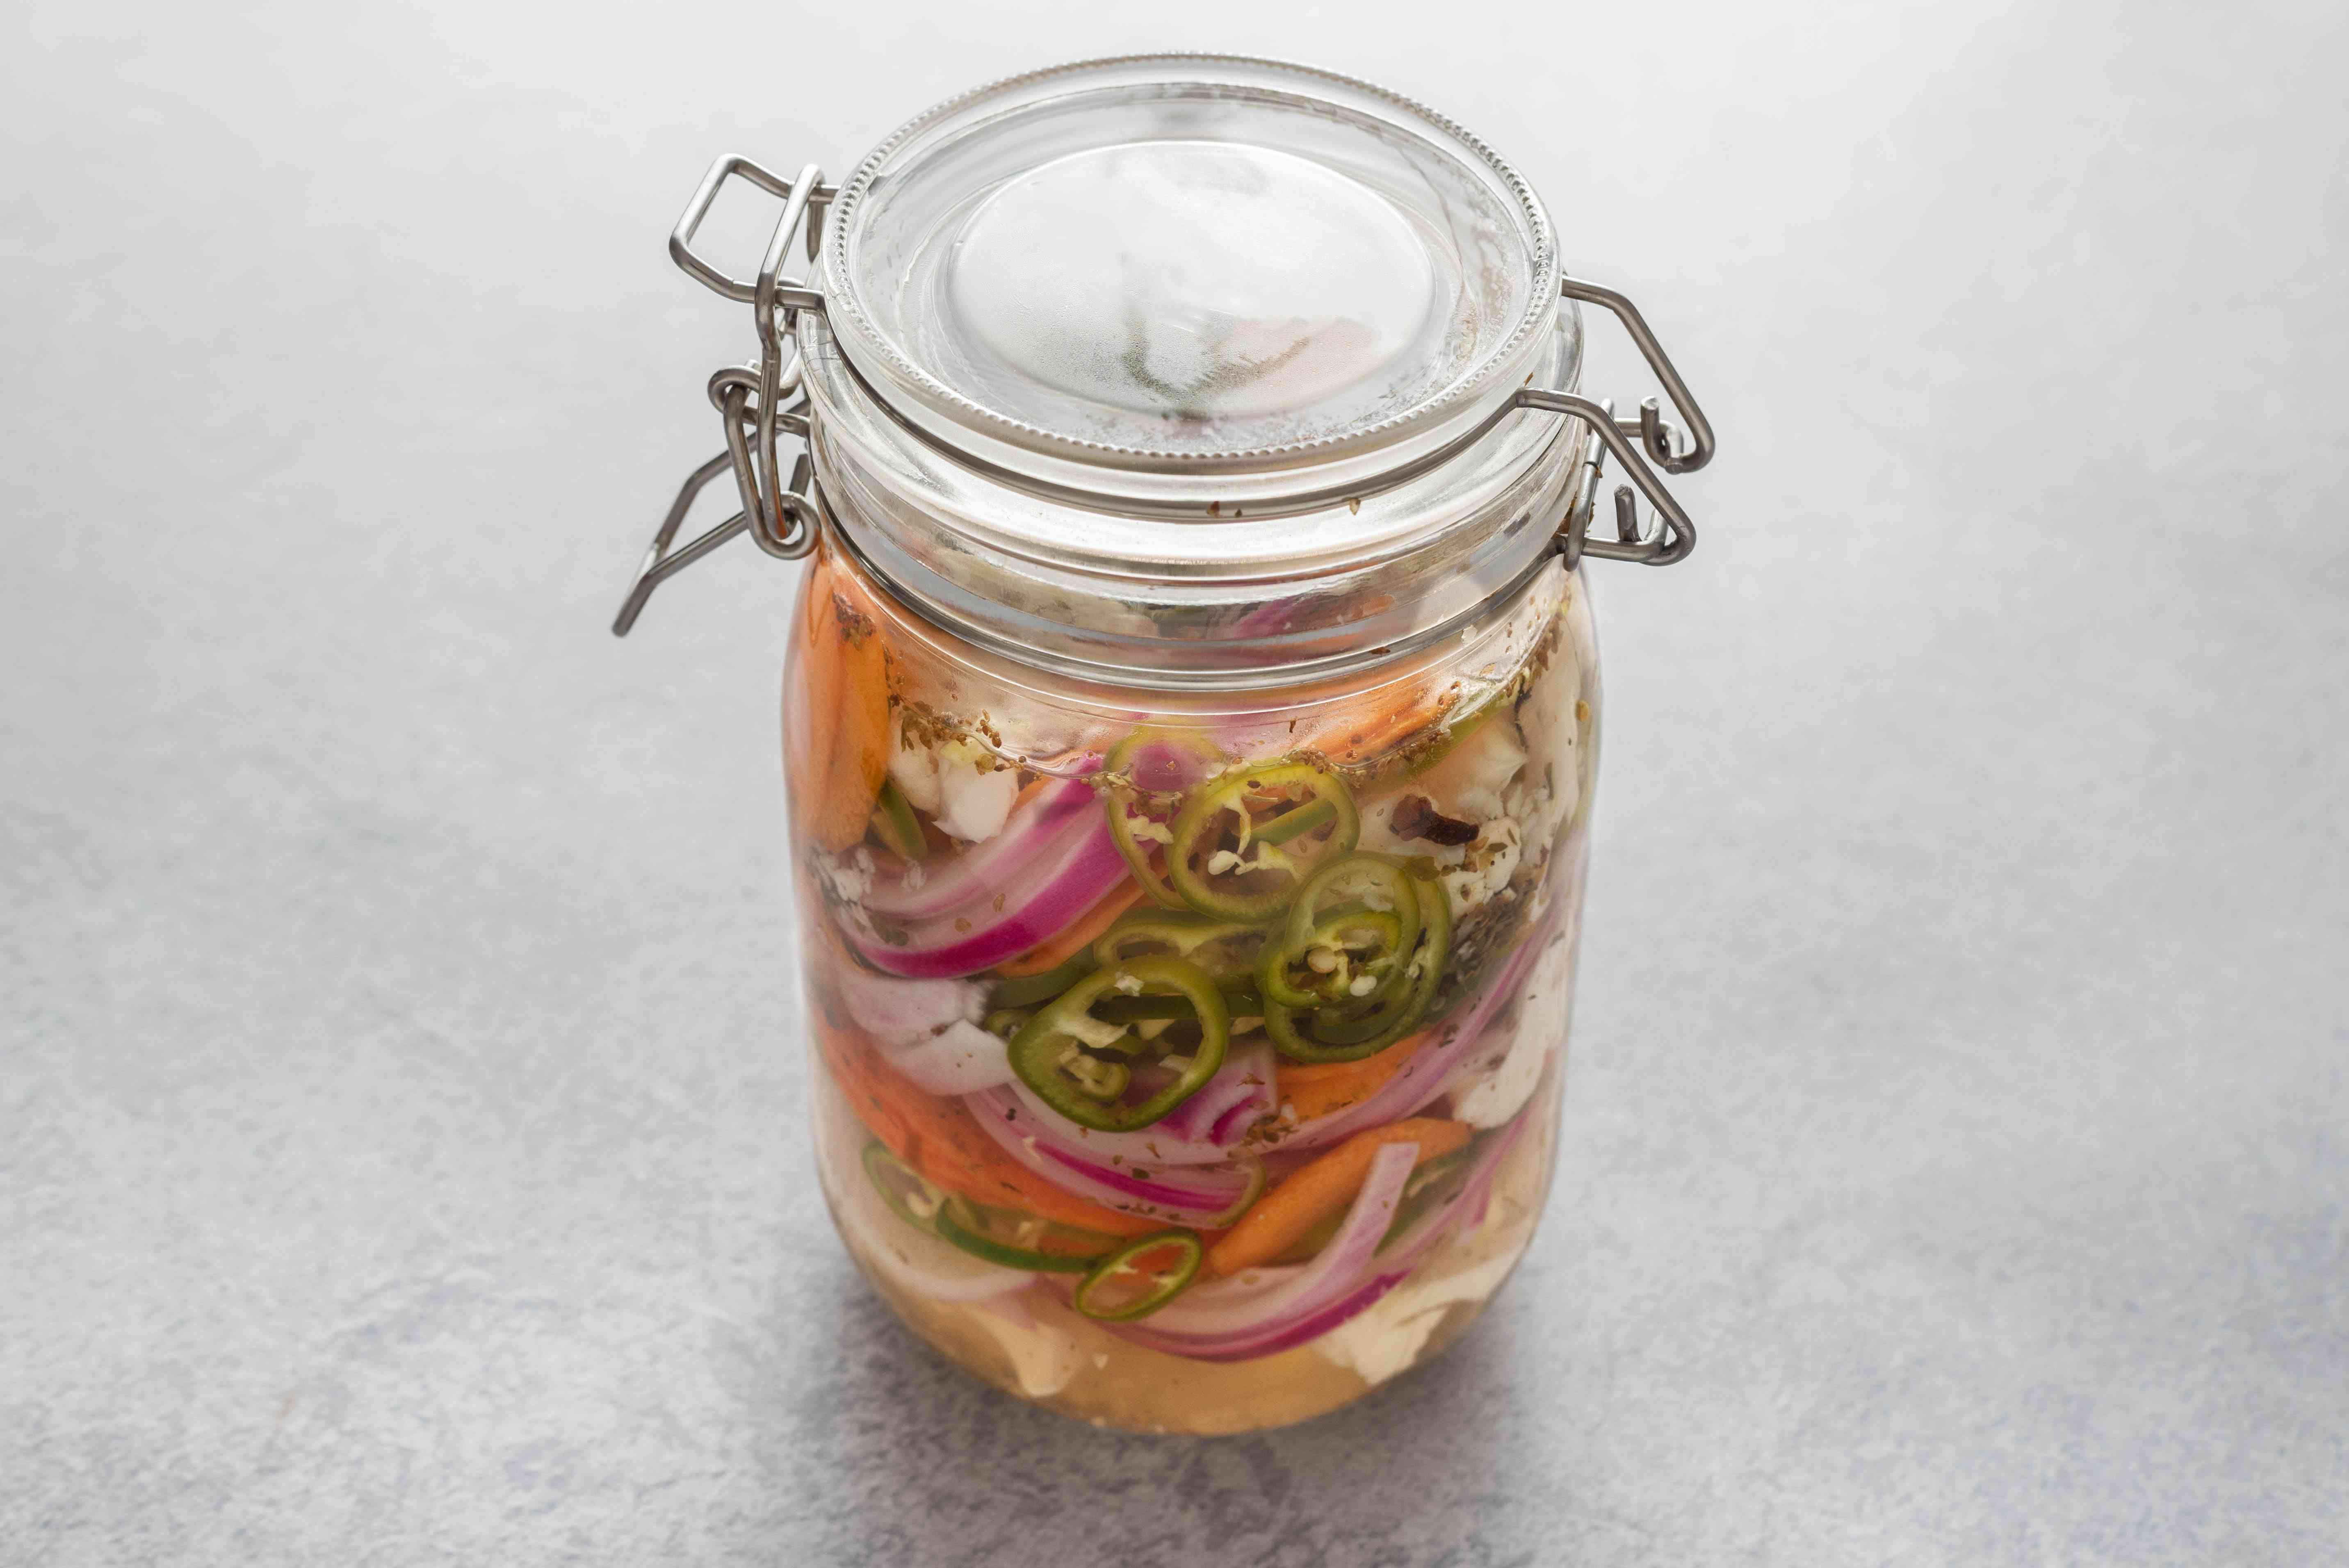 Pickled Cauliflower, Carrots, and Jalapenos (Escabeche) in a jar